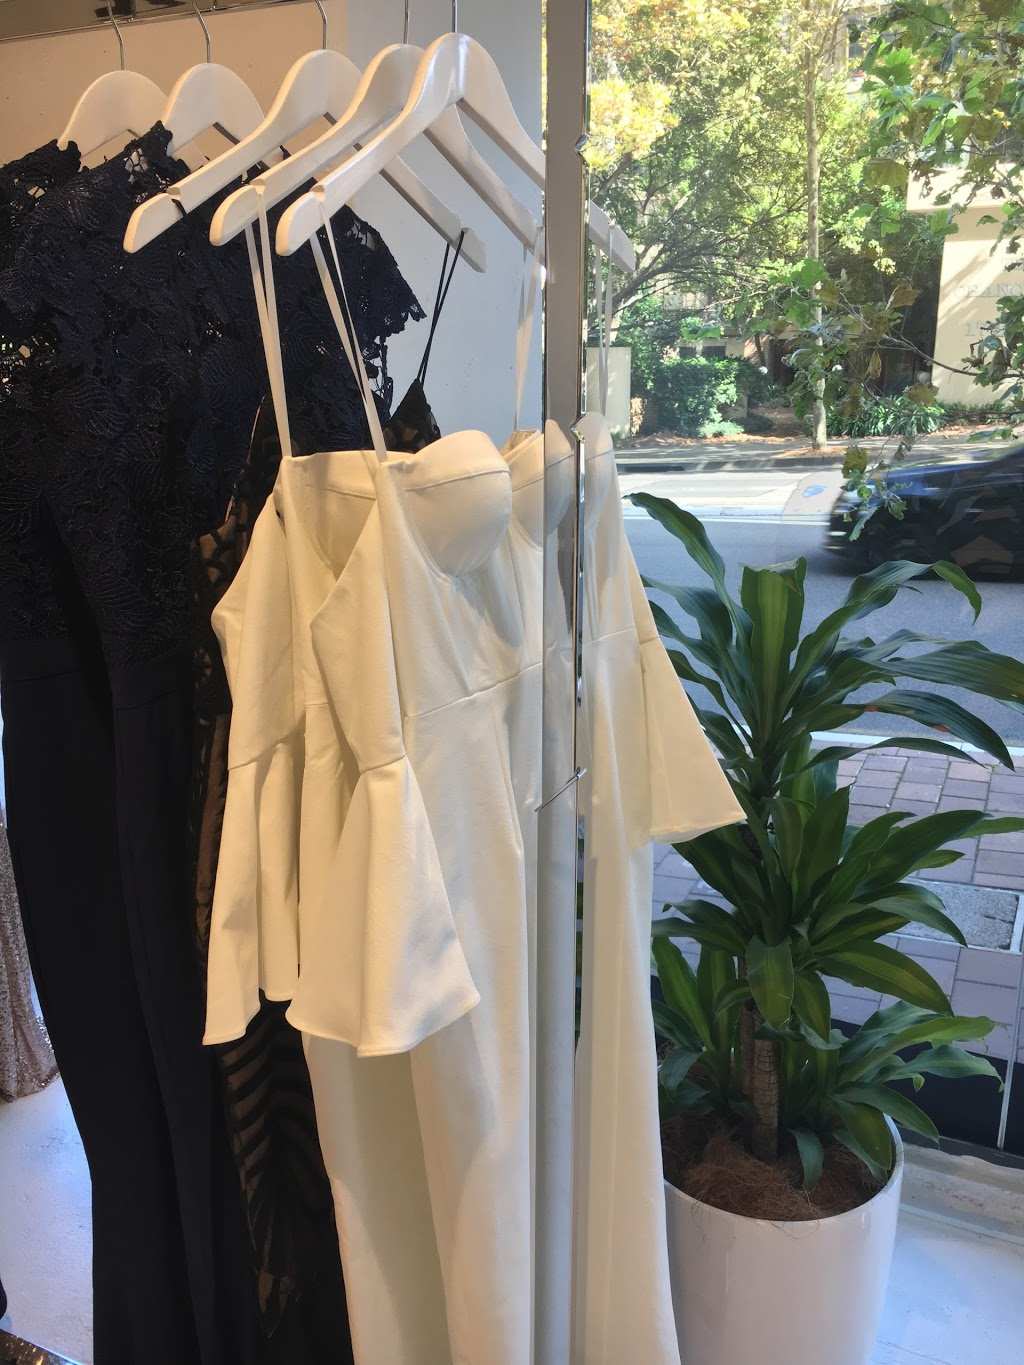 Helden Boutique | clothing store | 245 Pacific Hwy, North Sydney NSW 2060, Australia | 0455344641 OR +61 455 344 641